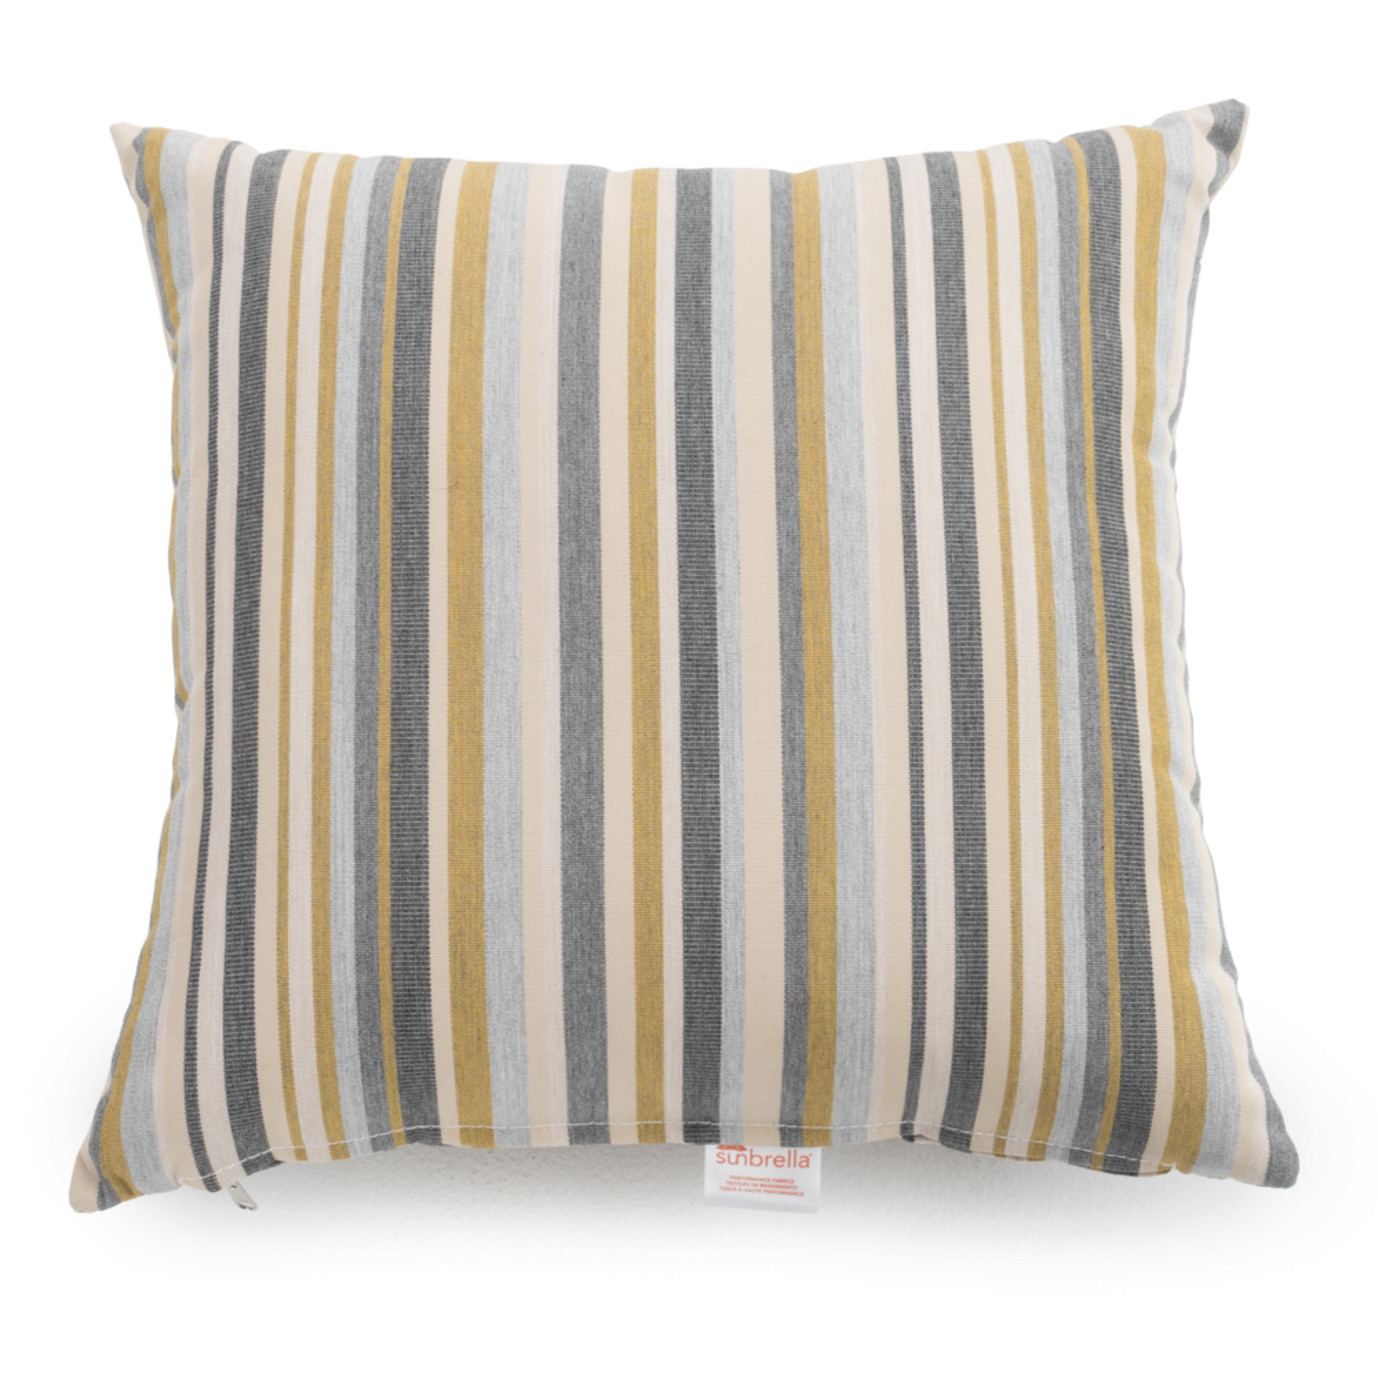 Vistano™ 16in Accent Pillow - Catalina Tinsel